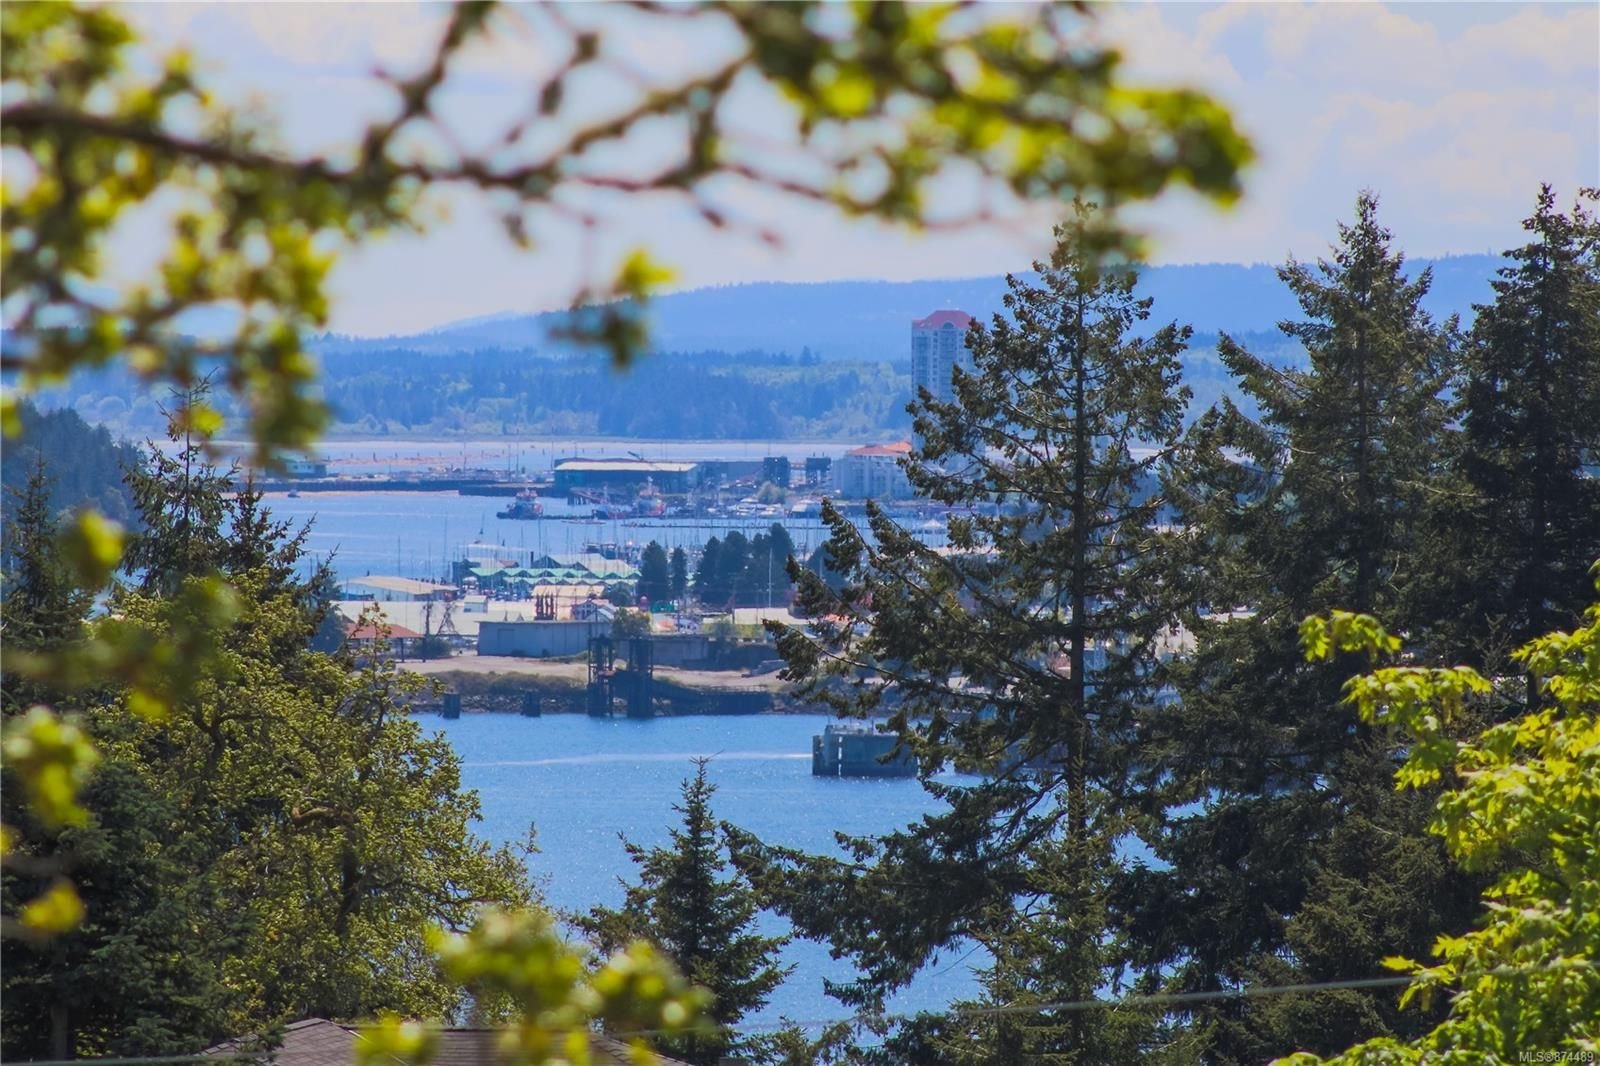 Main Photo: 1338 Jesters Way in : Na Departure Bay House for sale (Nanaimo)  : MLS®# 874489